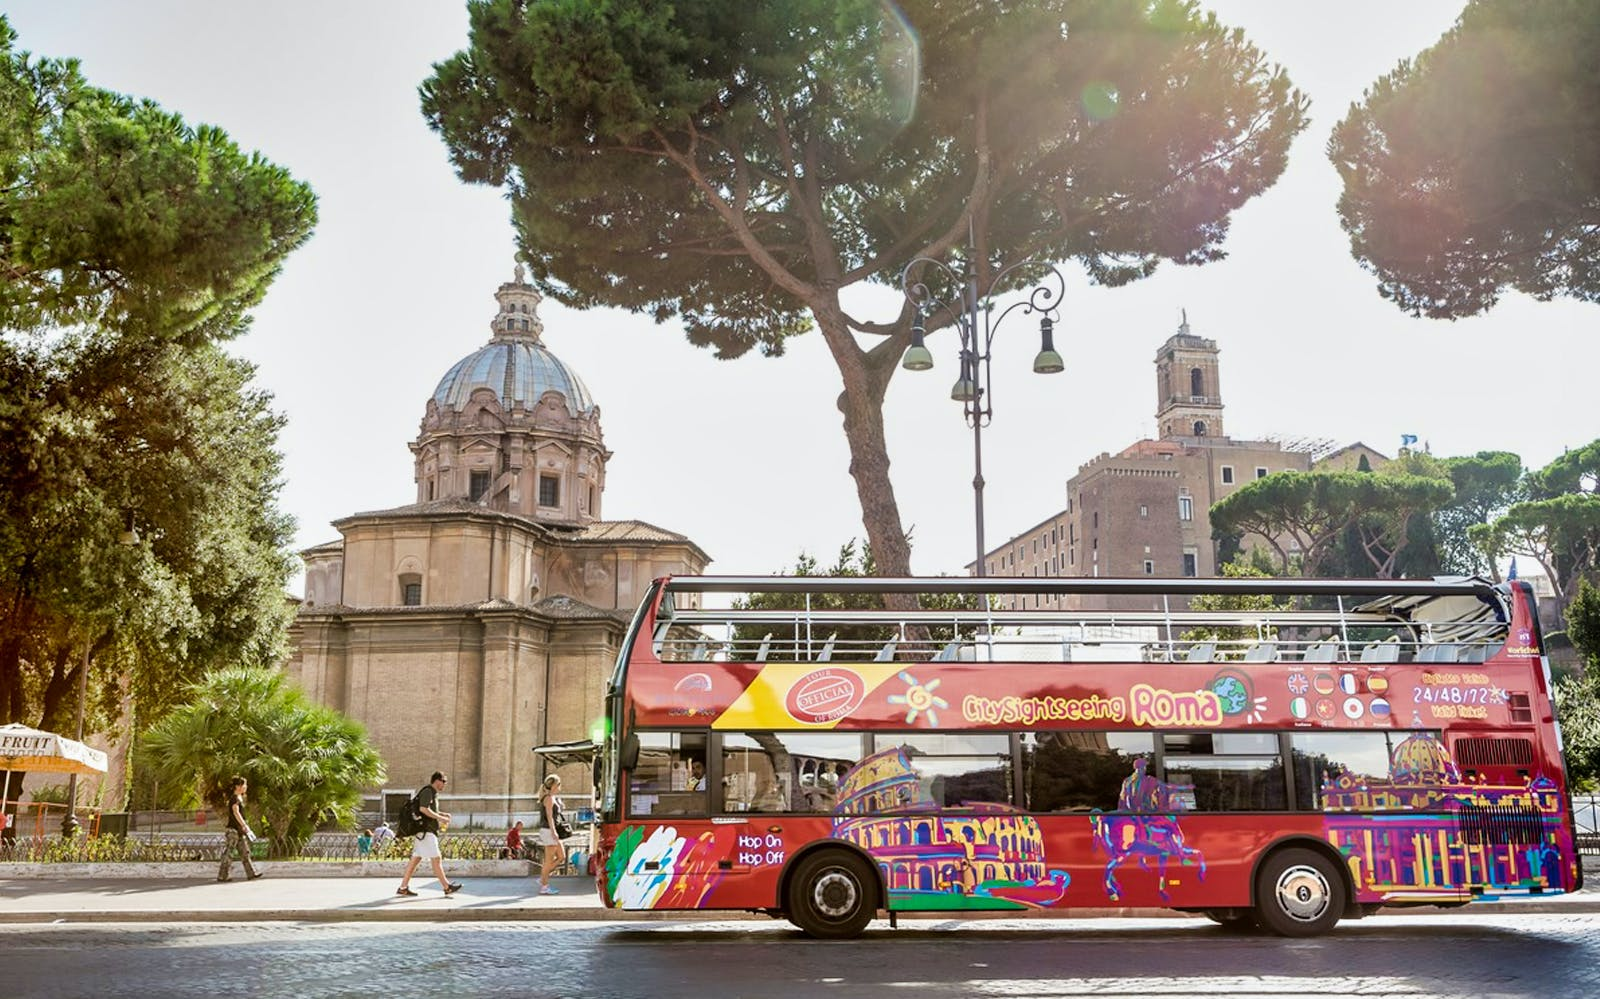 Hop-on Hop-off Bus Tour + Skip The Line Vatican Tickets